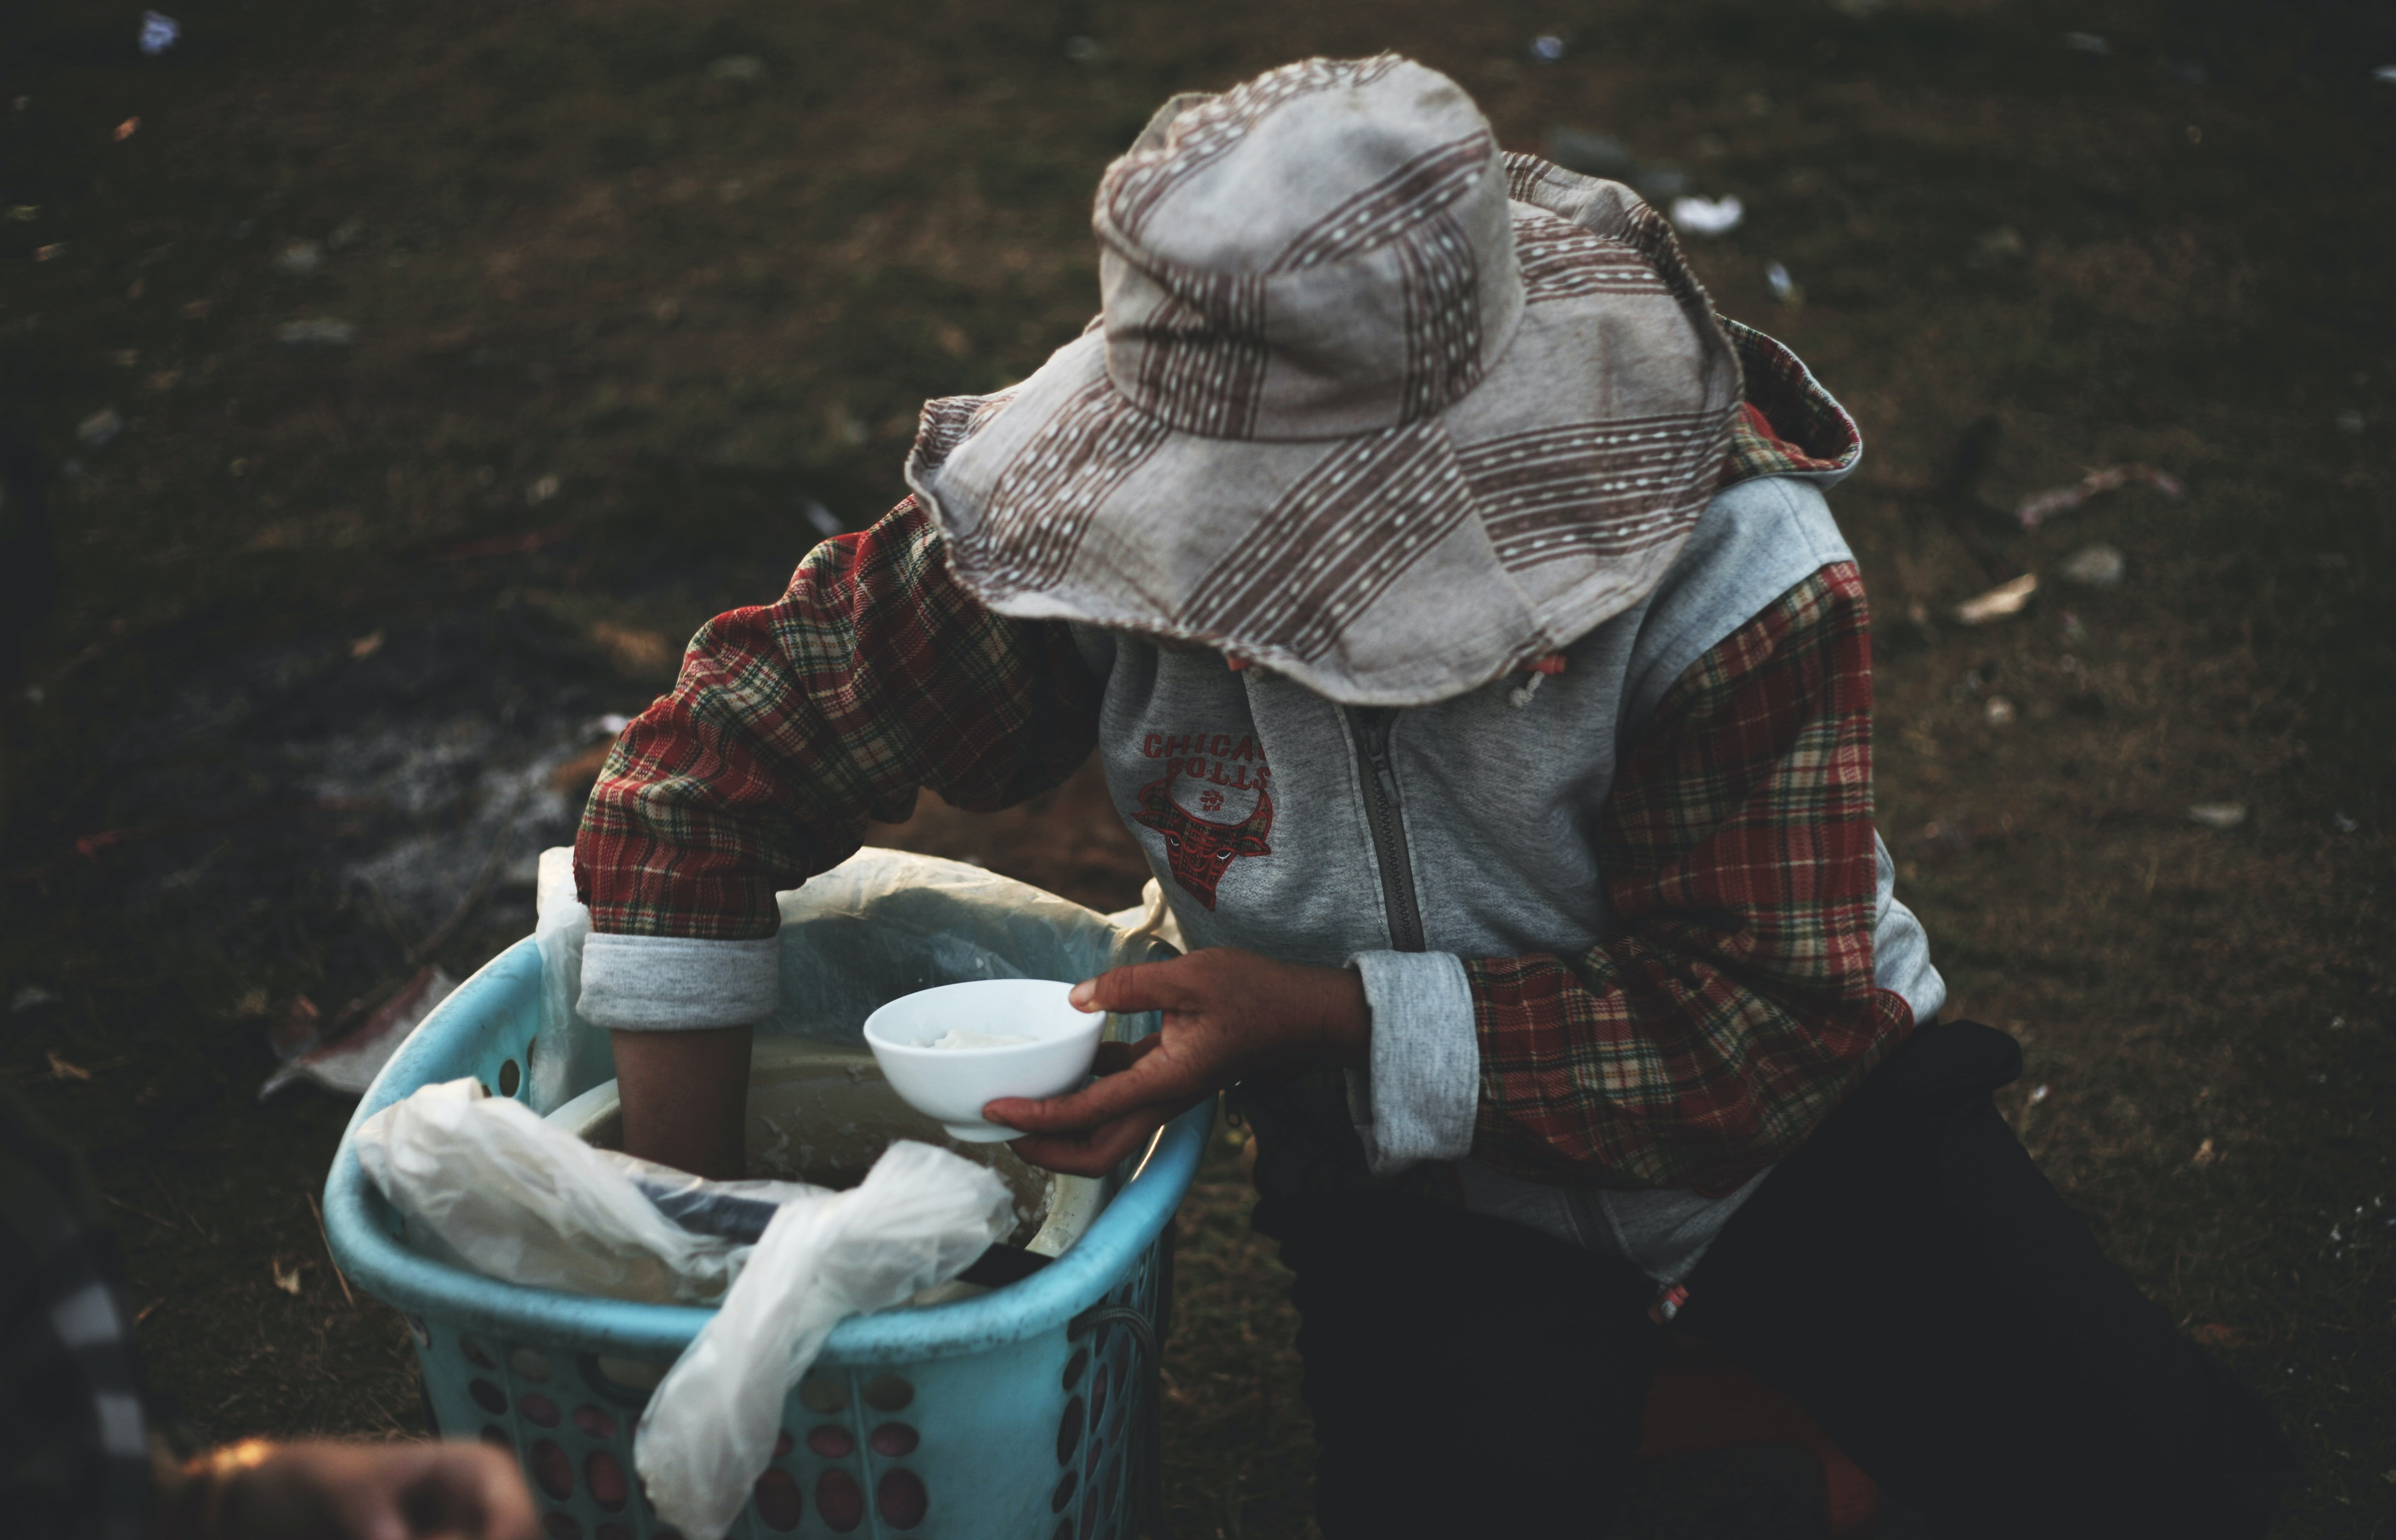 A woman serves rice from a basket